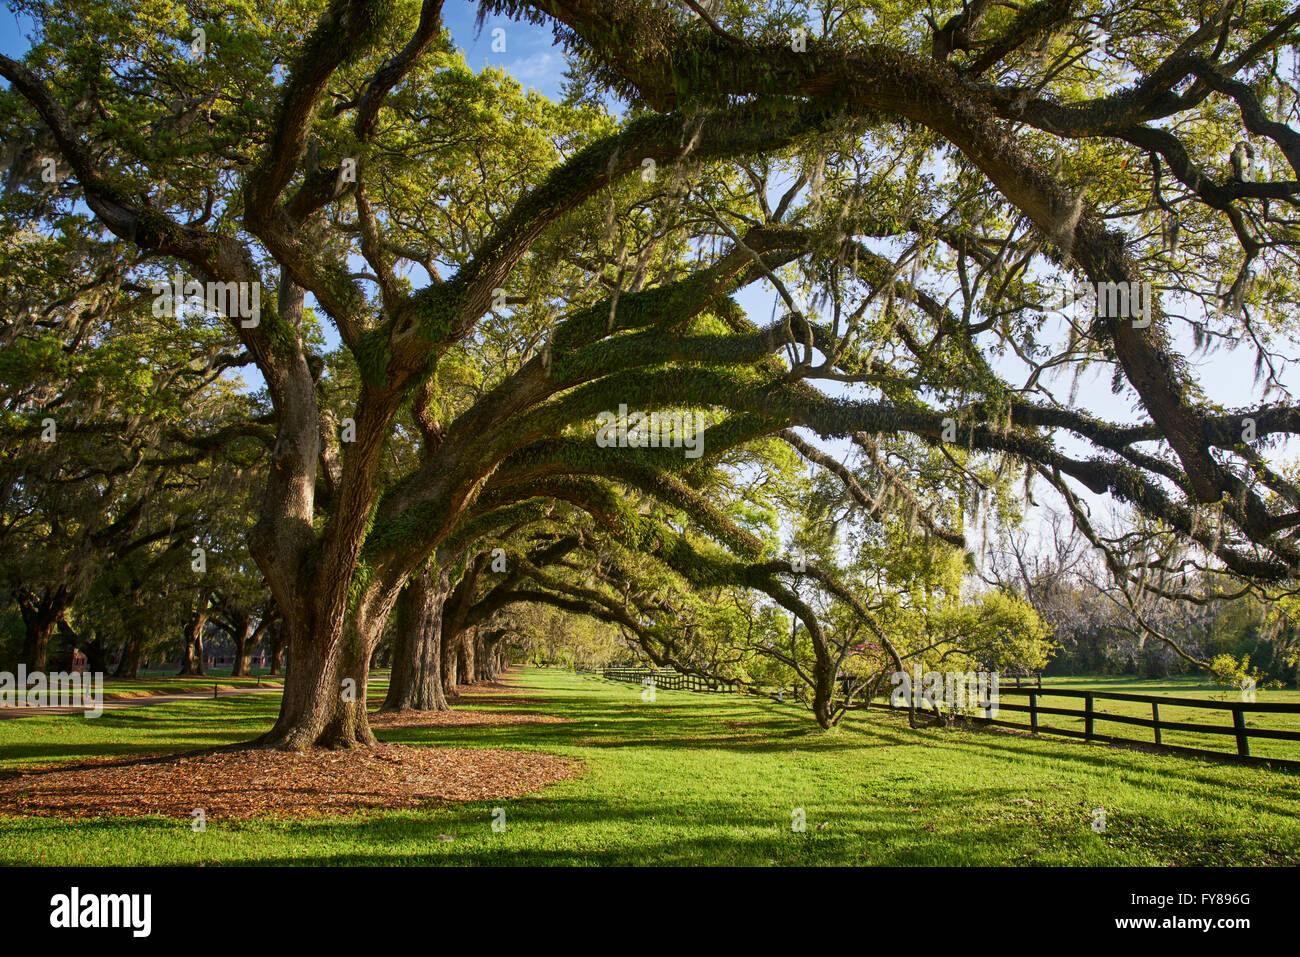 Iconic moss-covered oaks on Boon Hall Plantation in Charleston, South Carolina - Stock Image